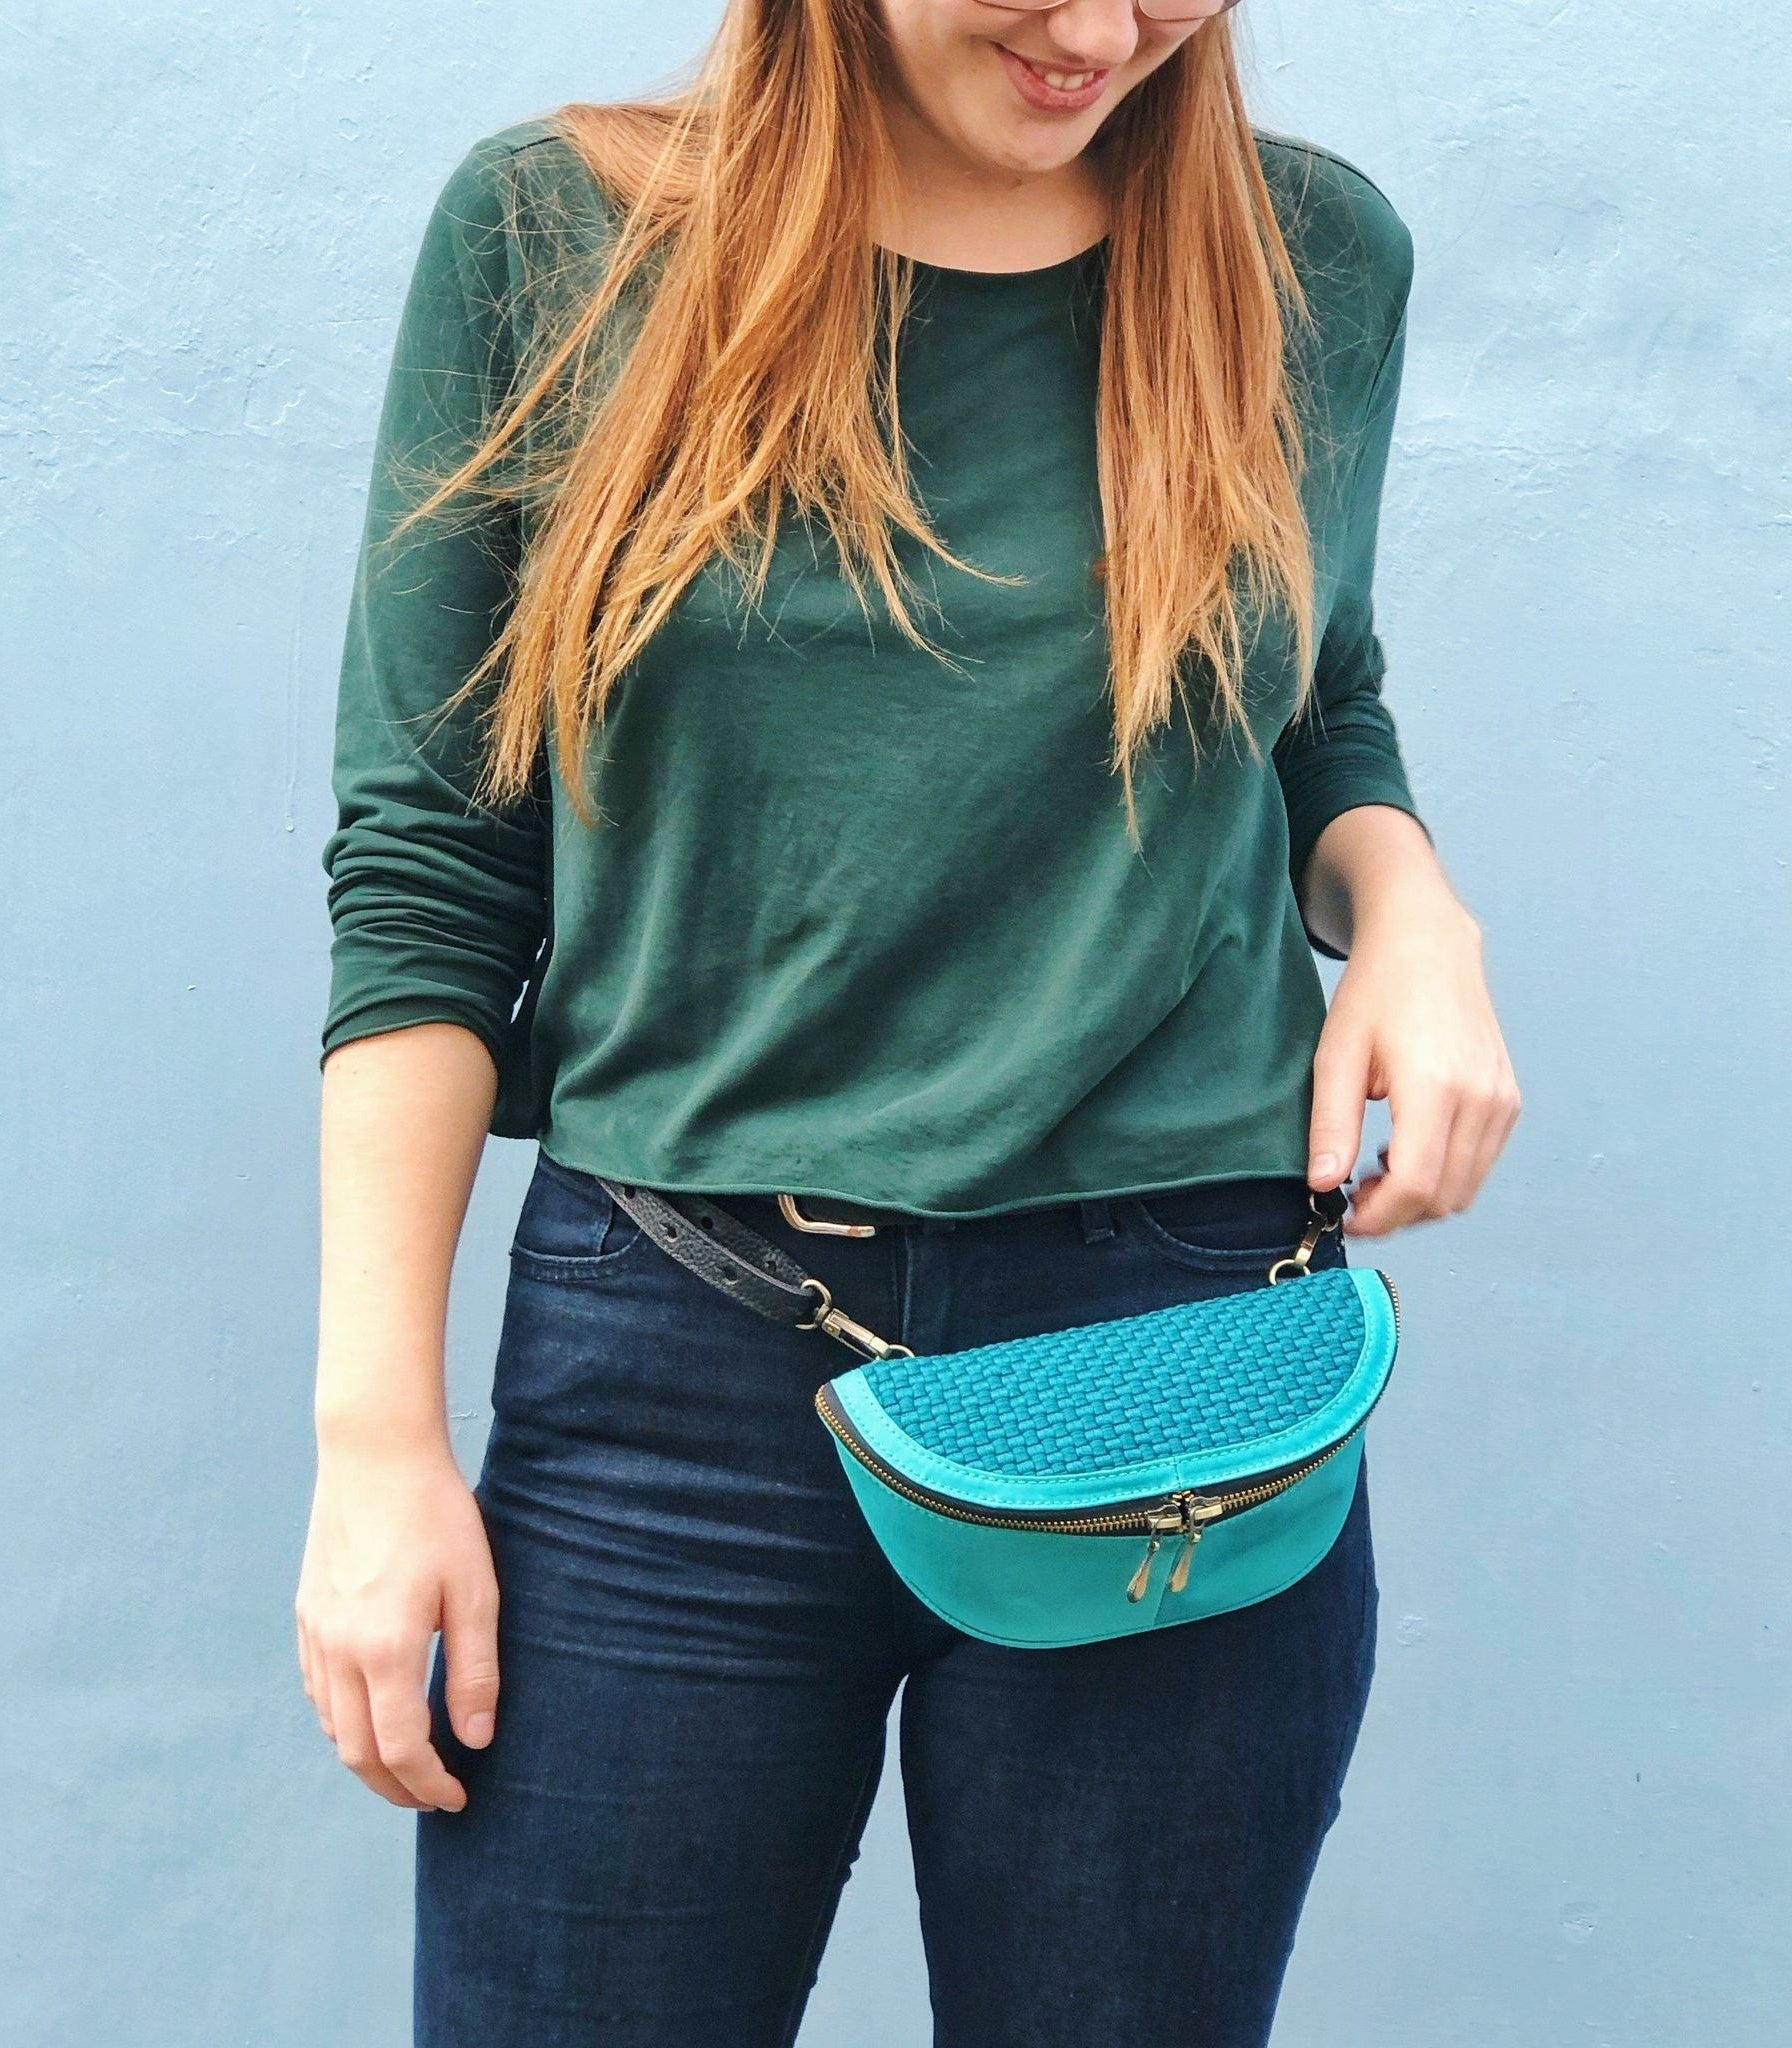 Noah Fanny Pack in Teal - Rags2riches